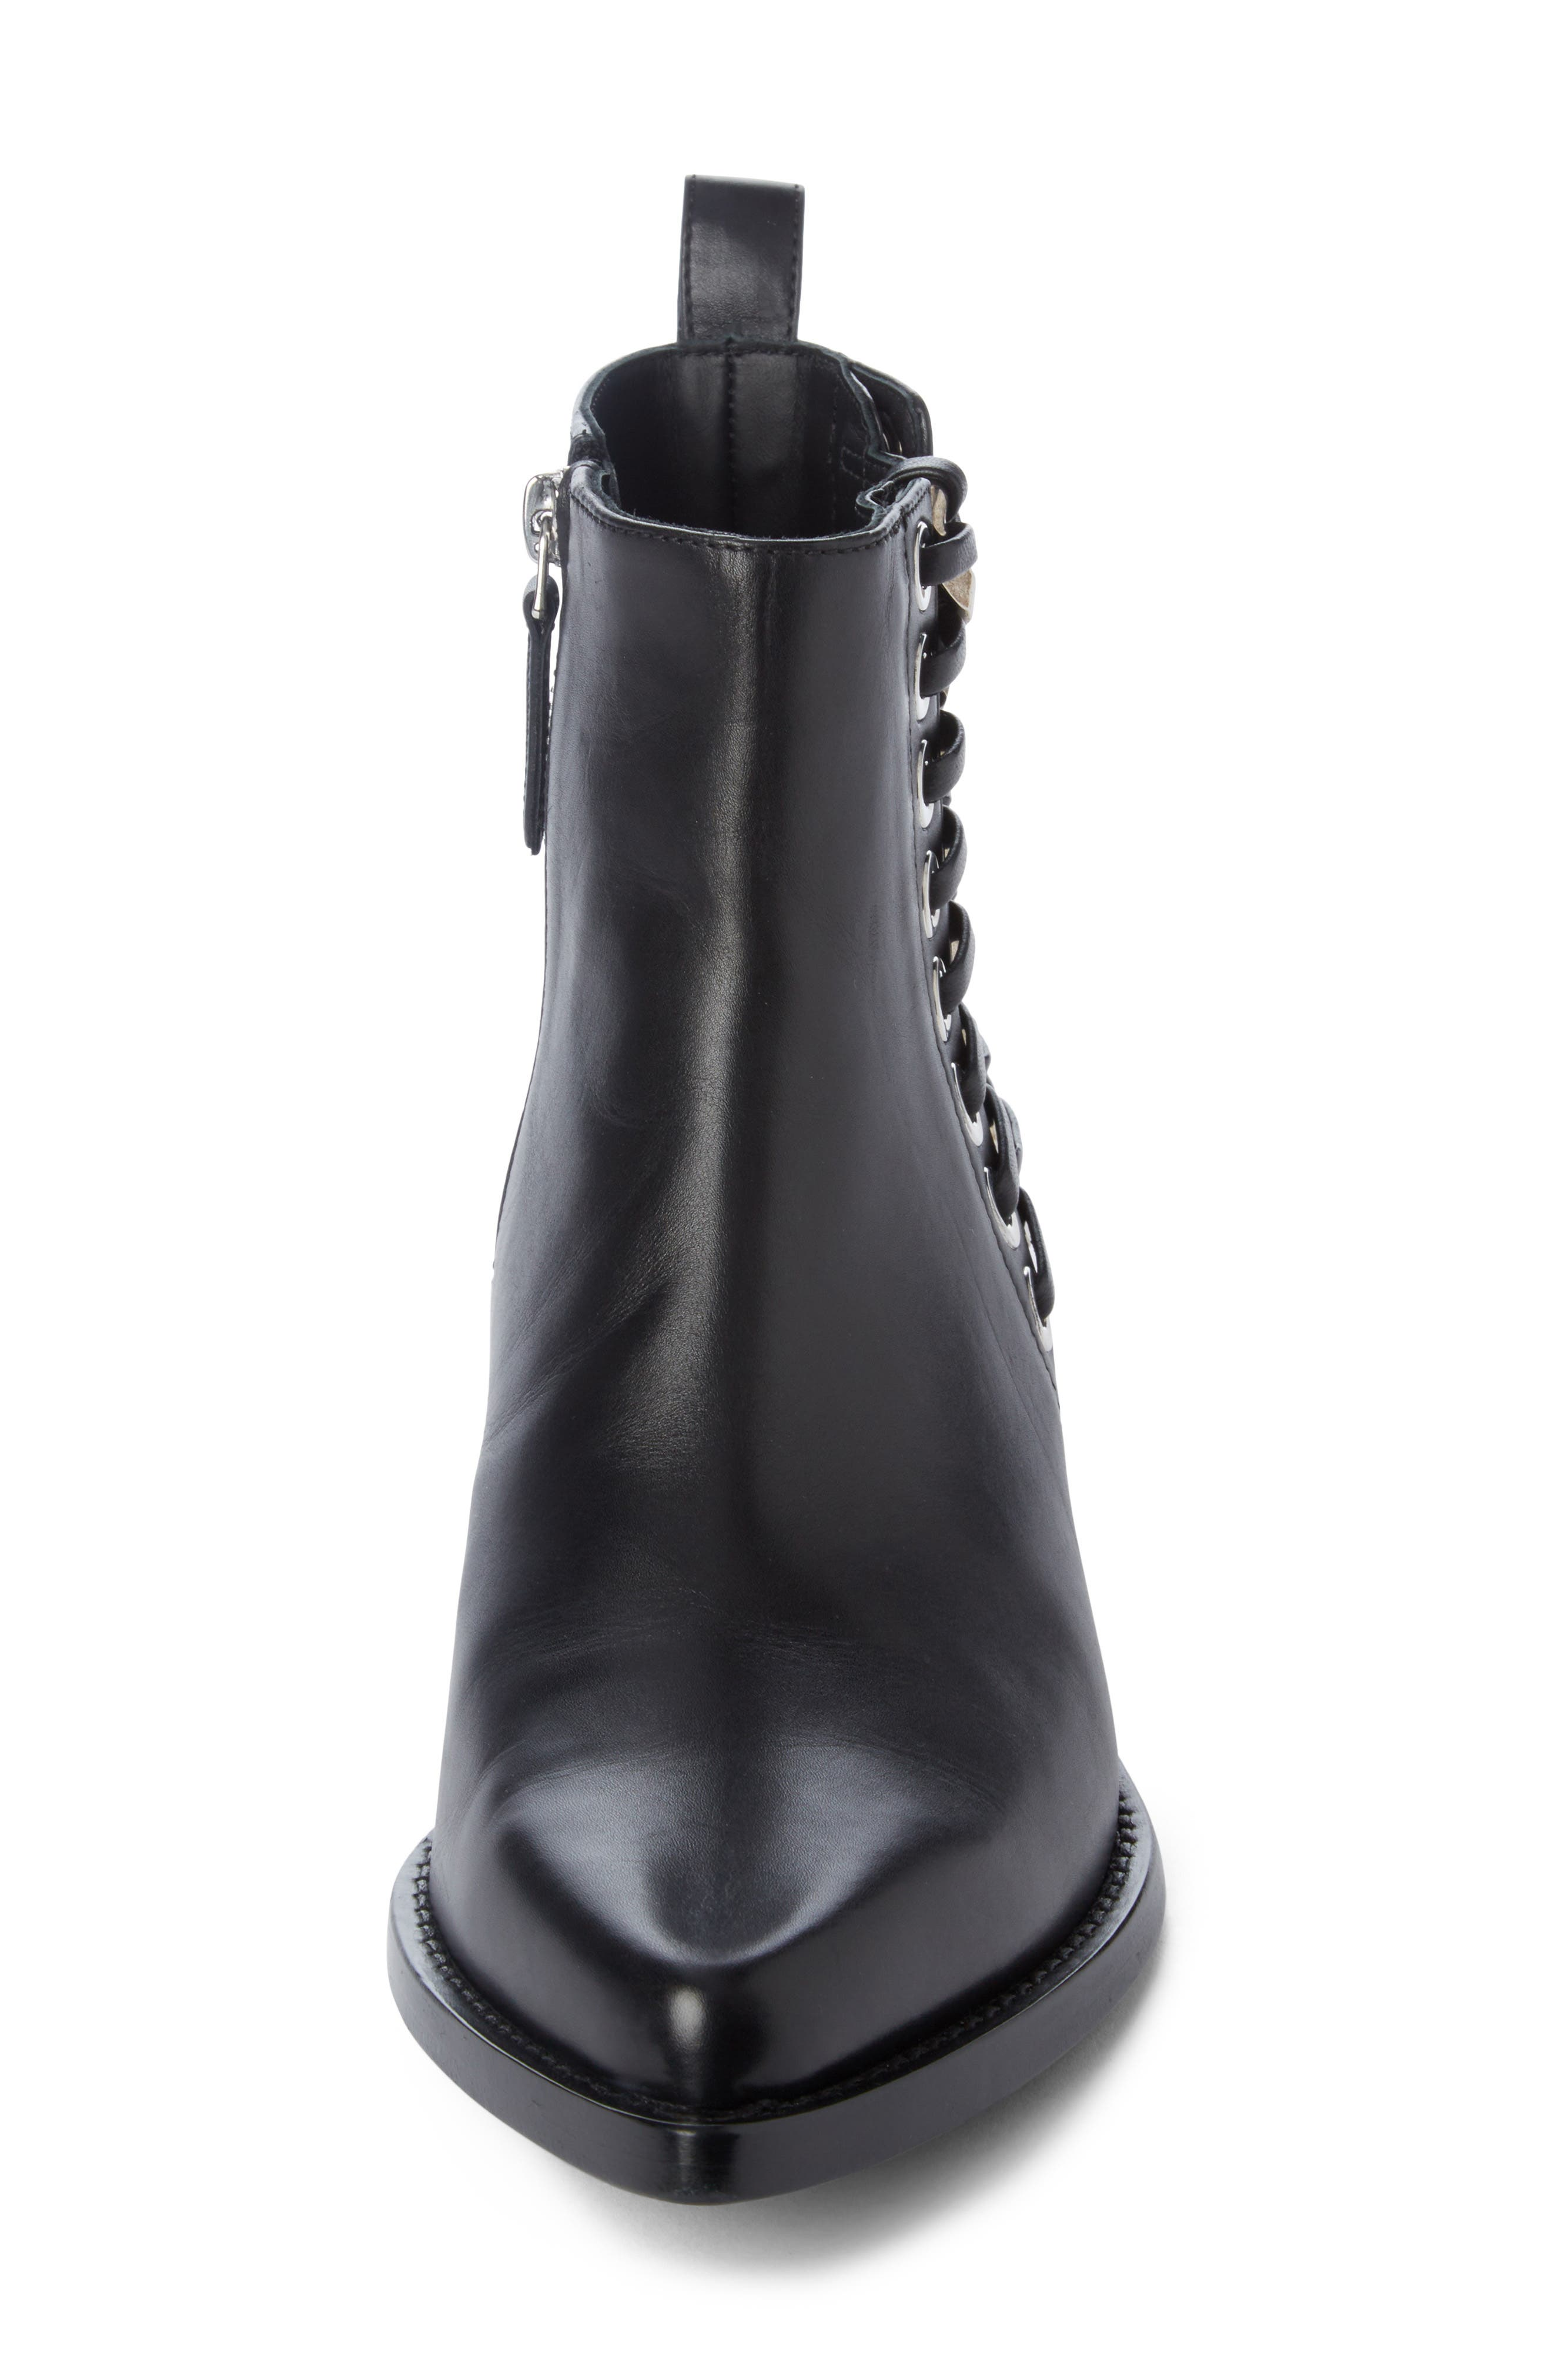 Braided Chain Boot,                             Alternate thumbnail 4, color,                             Black/ Silver